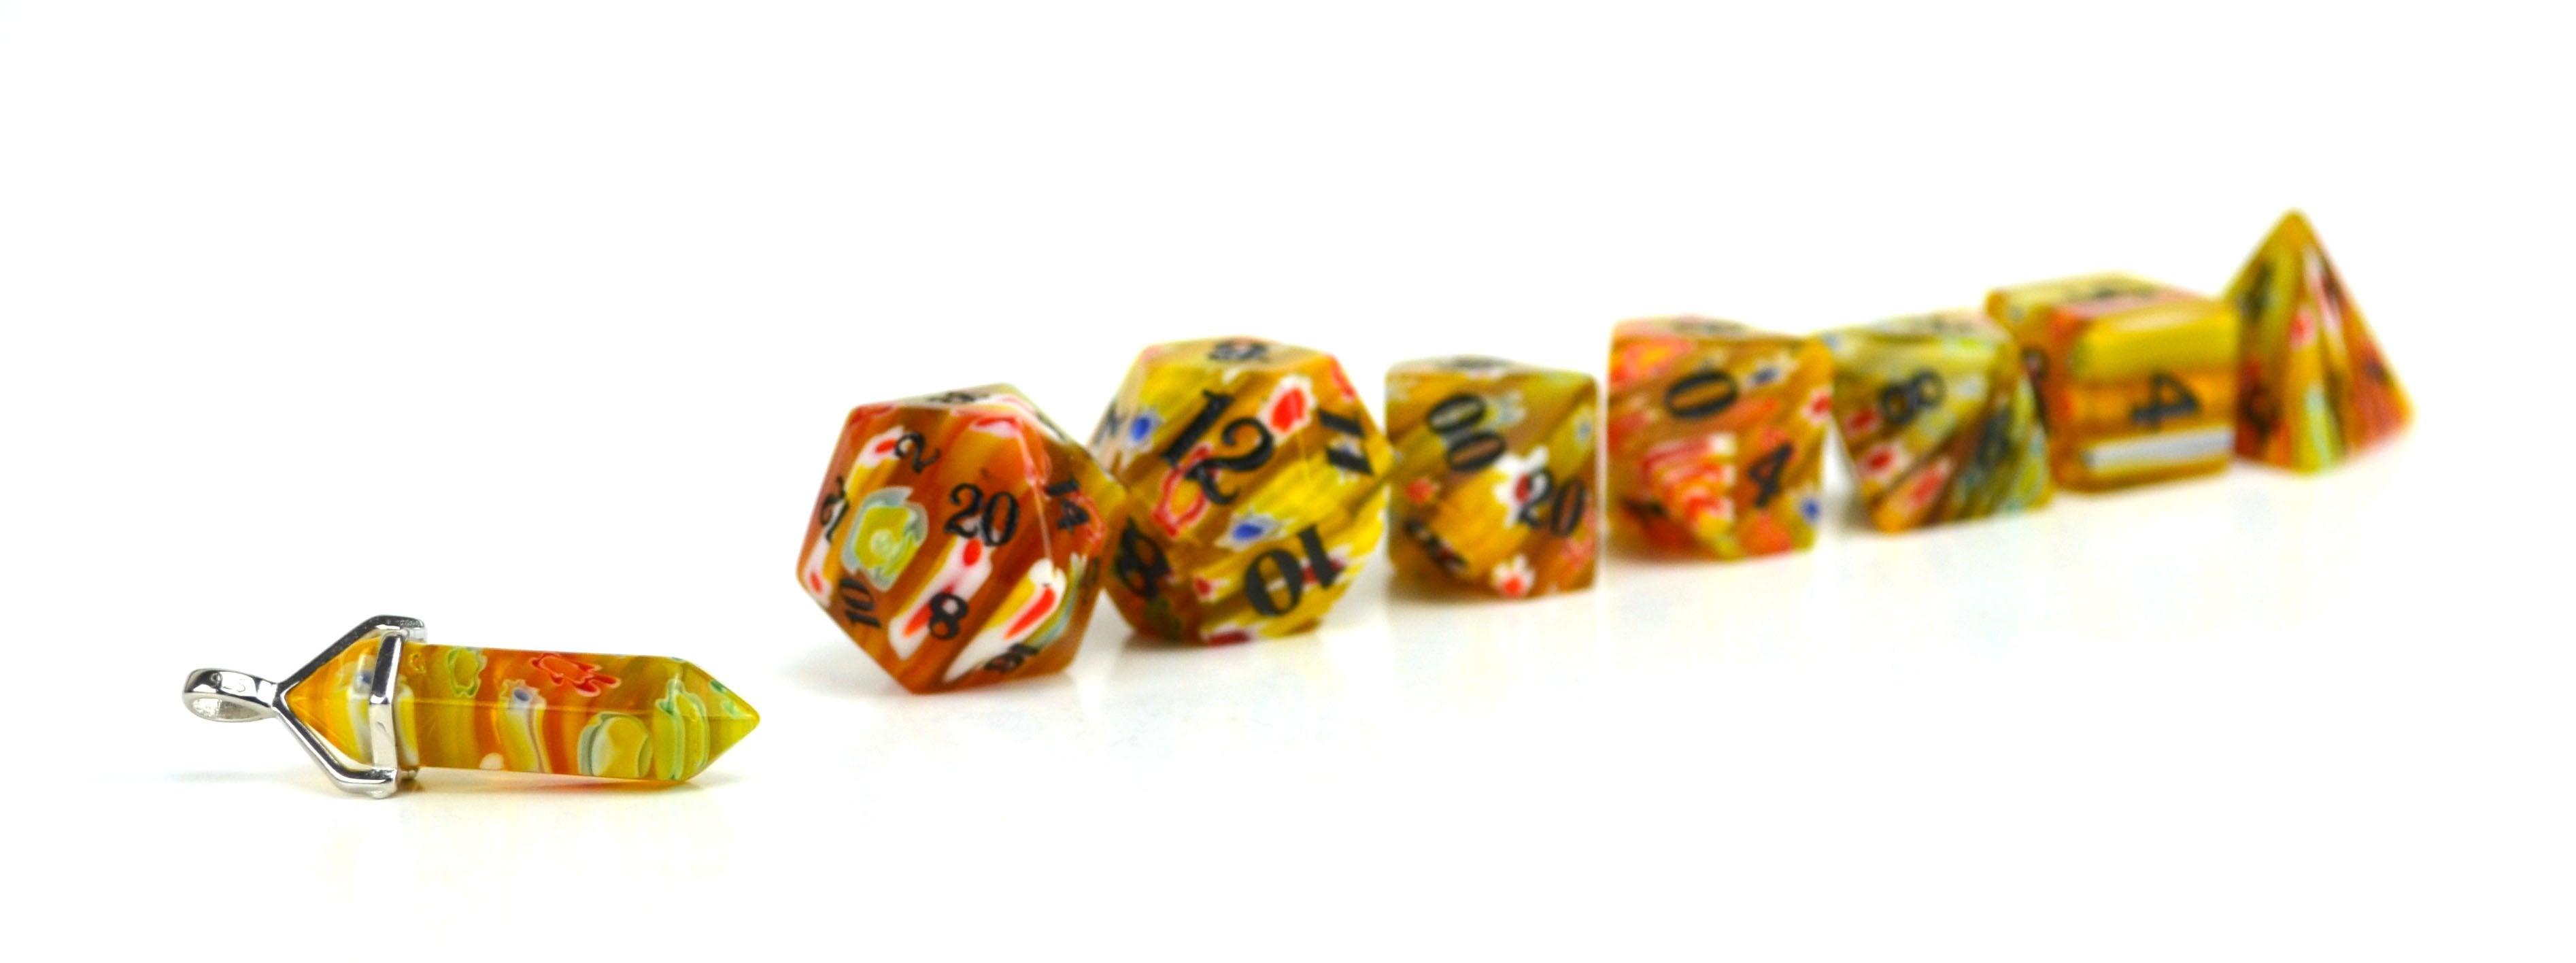 Honeysuckle Candy Glass Dice (JD) Set of 7